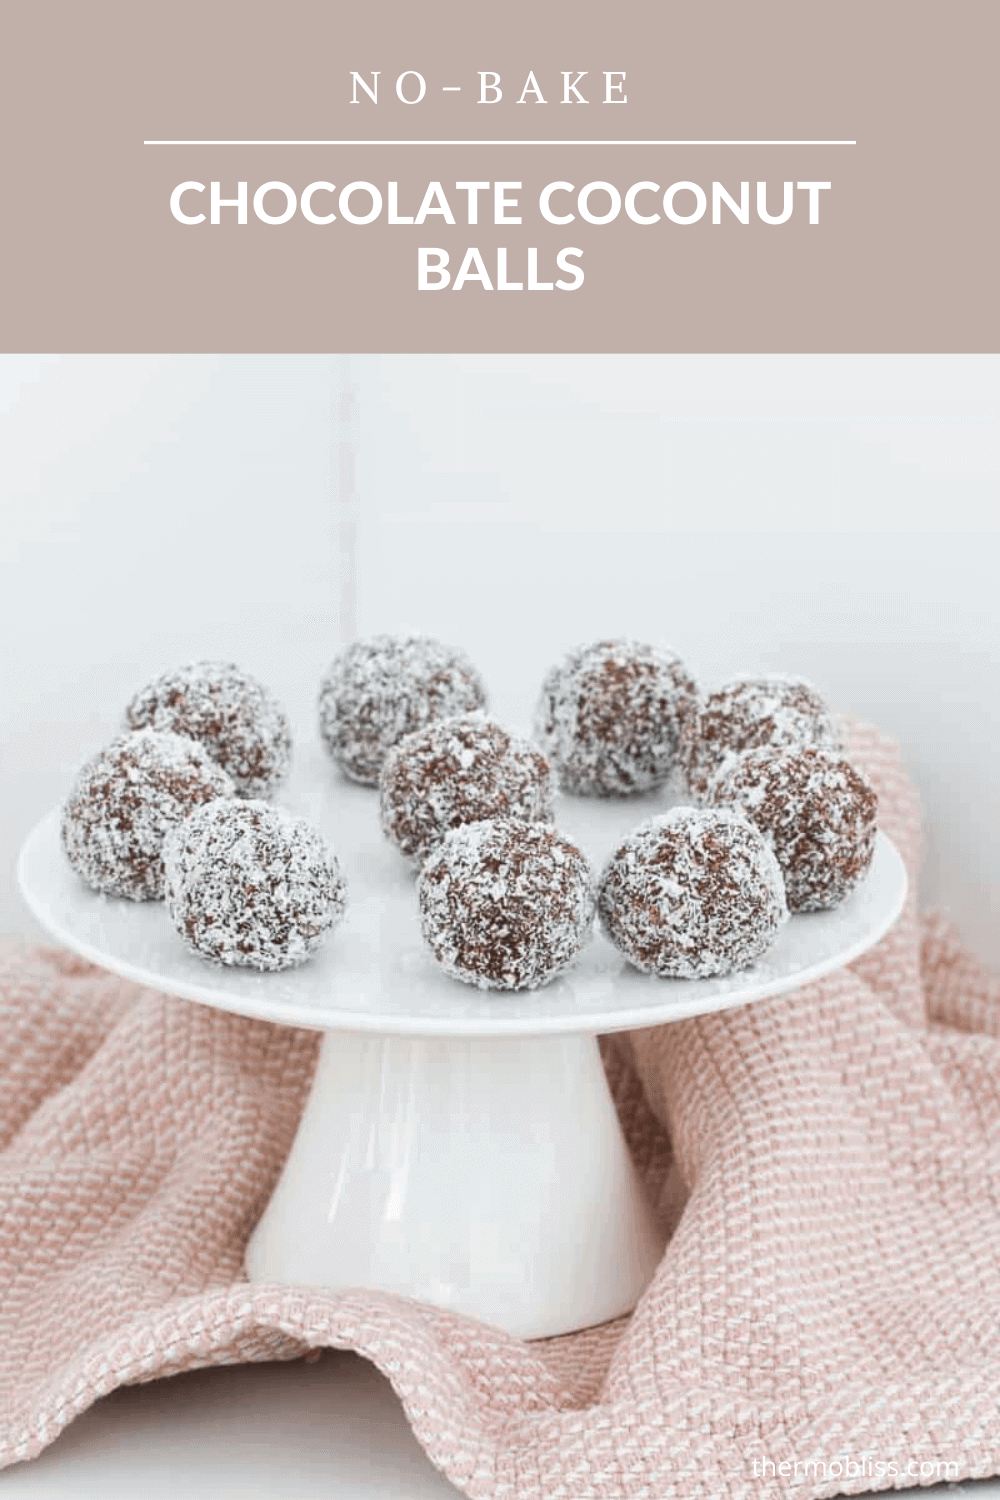 A white cake stand with balls made from biscuits and coconut.